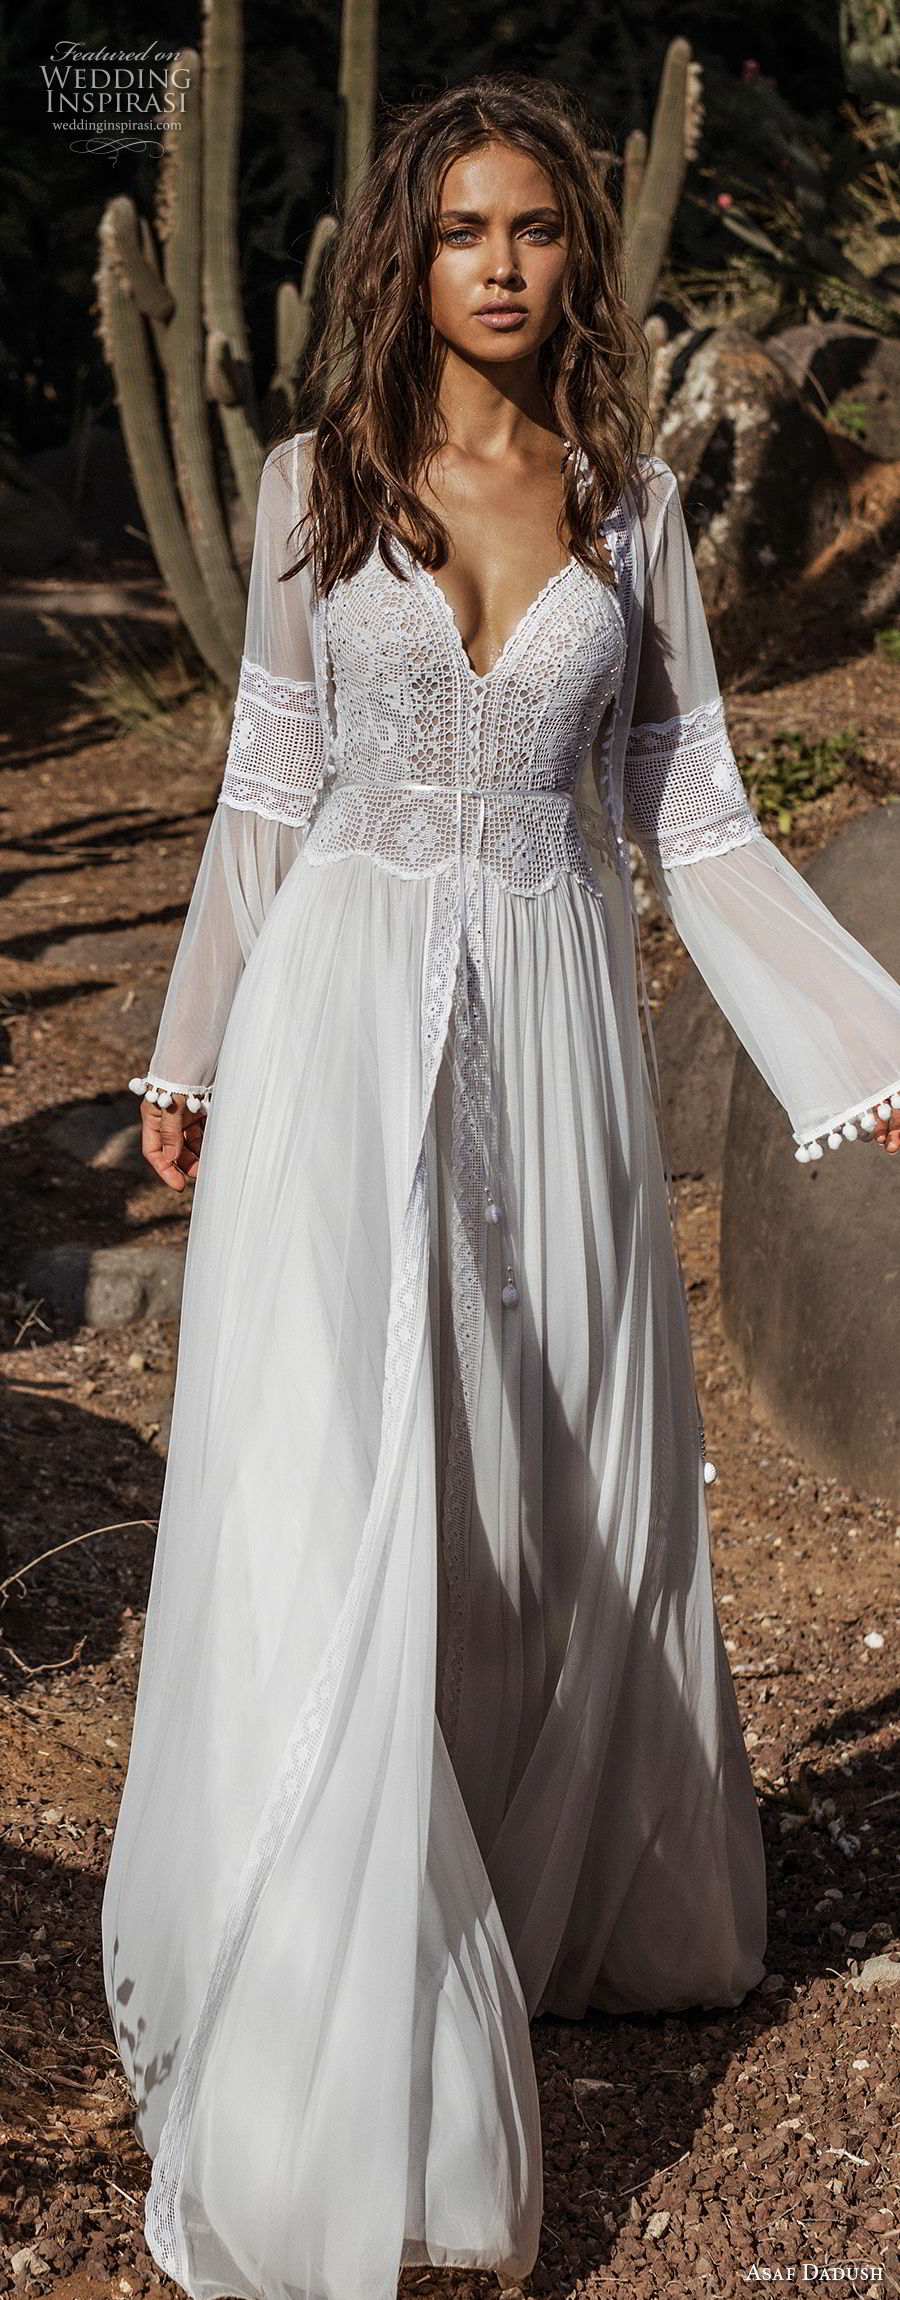 fc1283746cd asaf dadush 2018 bridal long lantern sleeves thin strap sweetheart neckline  heavily embellished bodice romantic bohemian